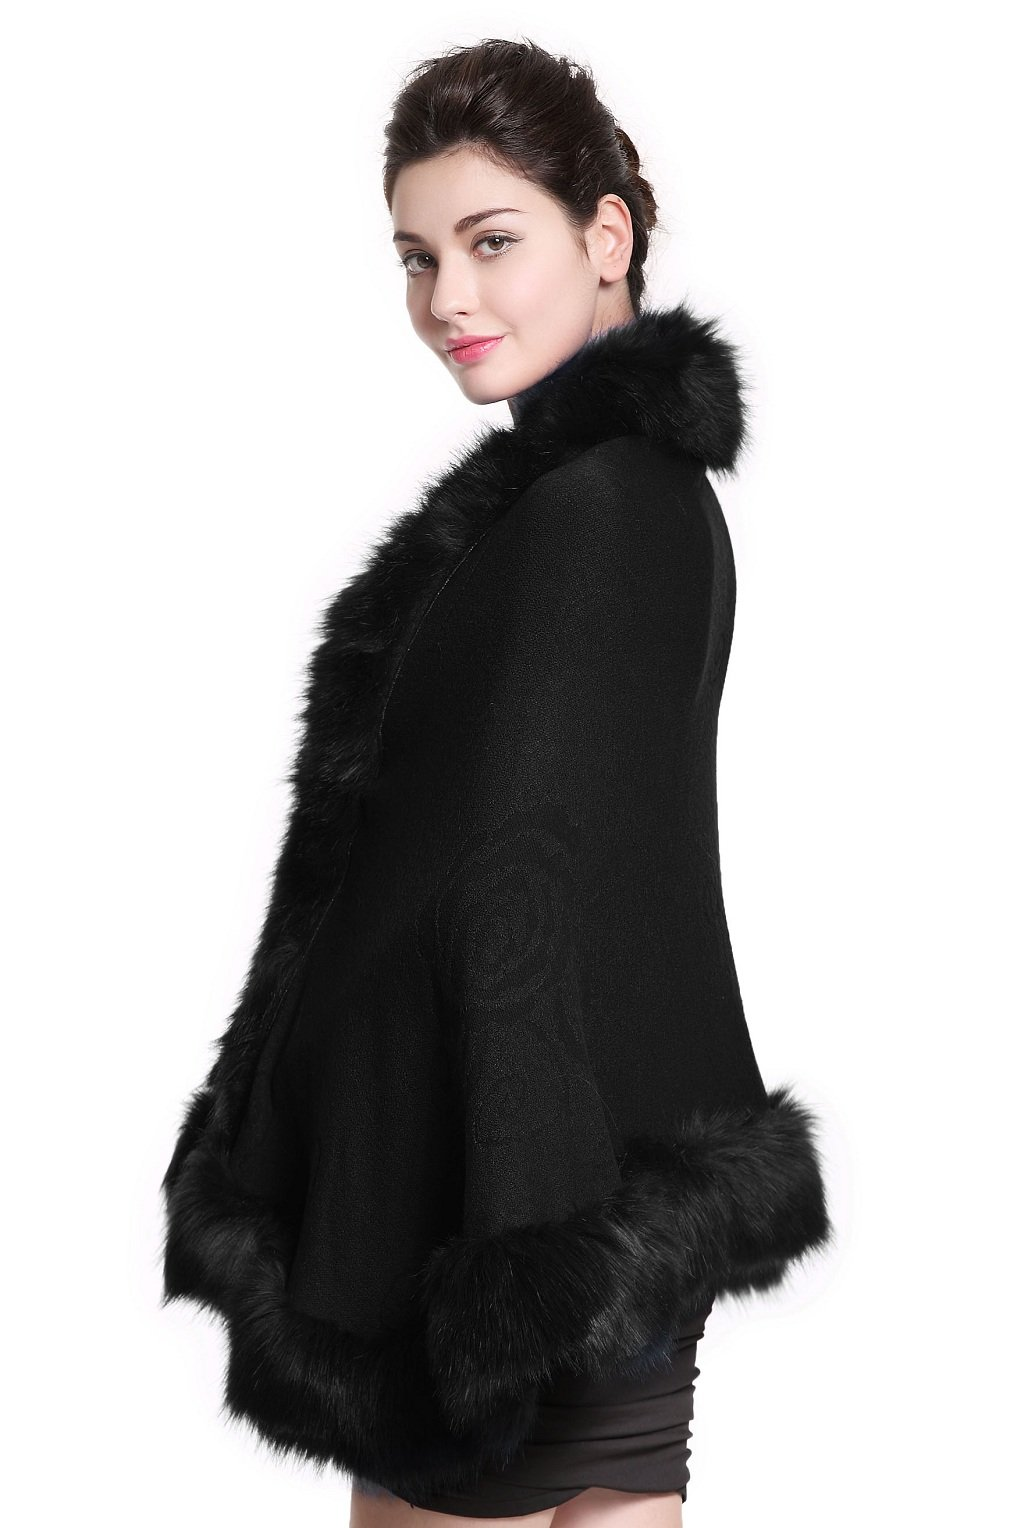 Faux Fur Shawl Wrap Stole Shrug Bridal Winter Wedding with Hook,Black,One Size by BEAUTELICATE